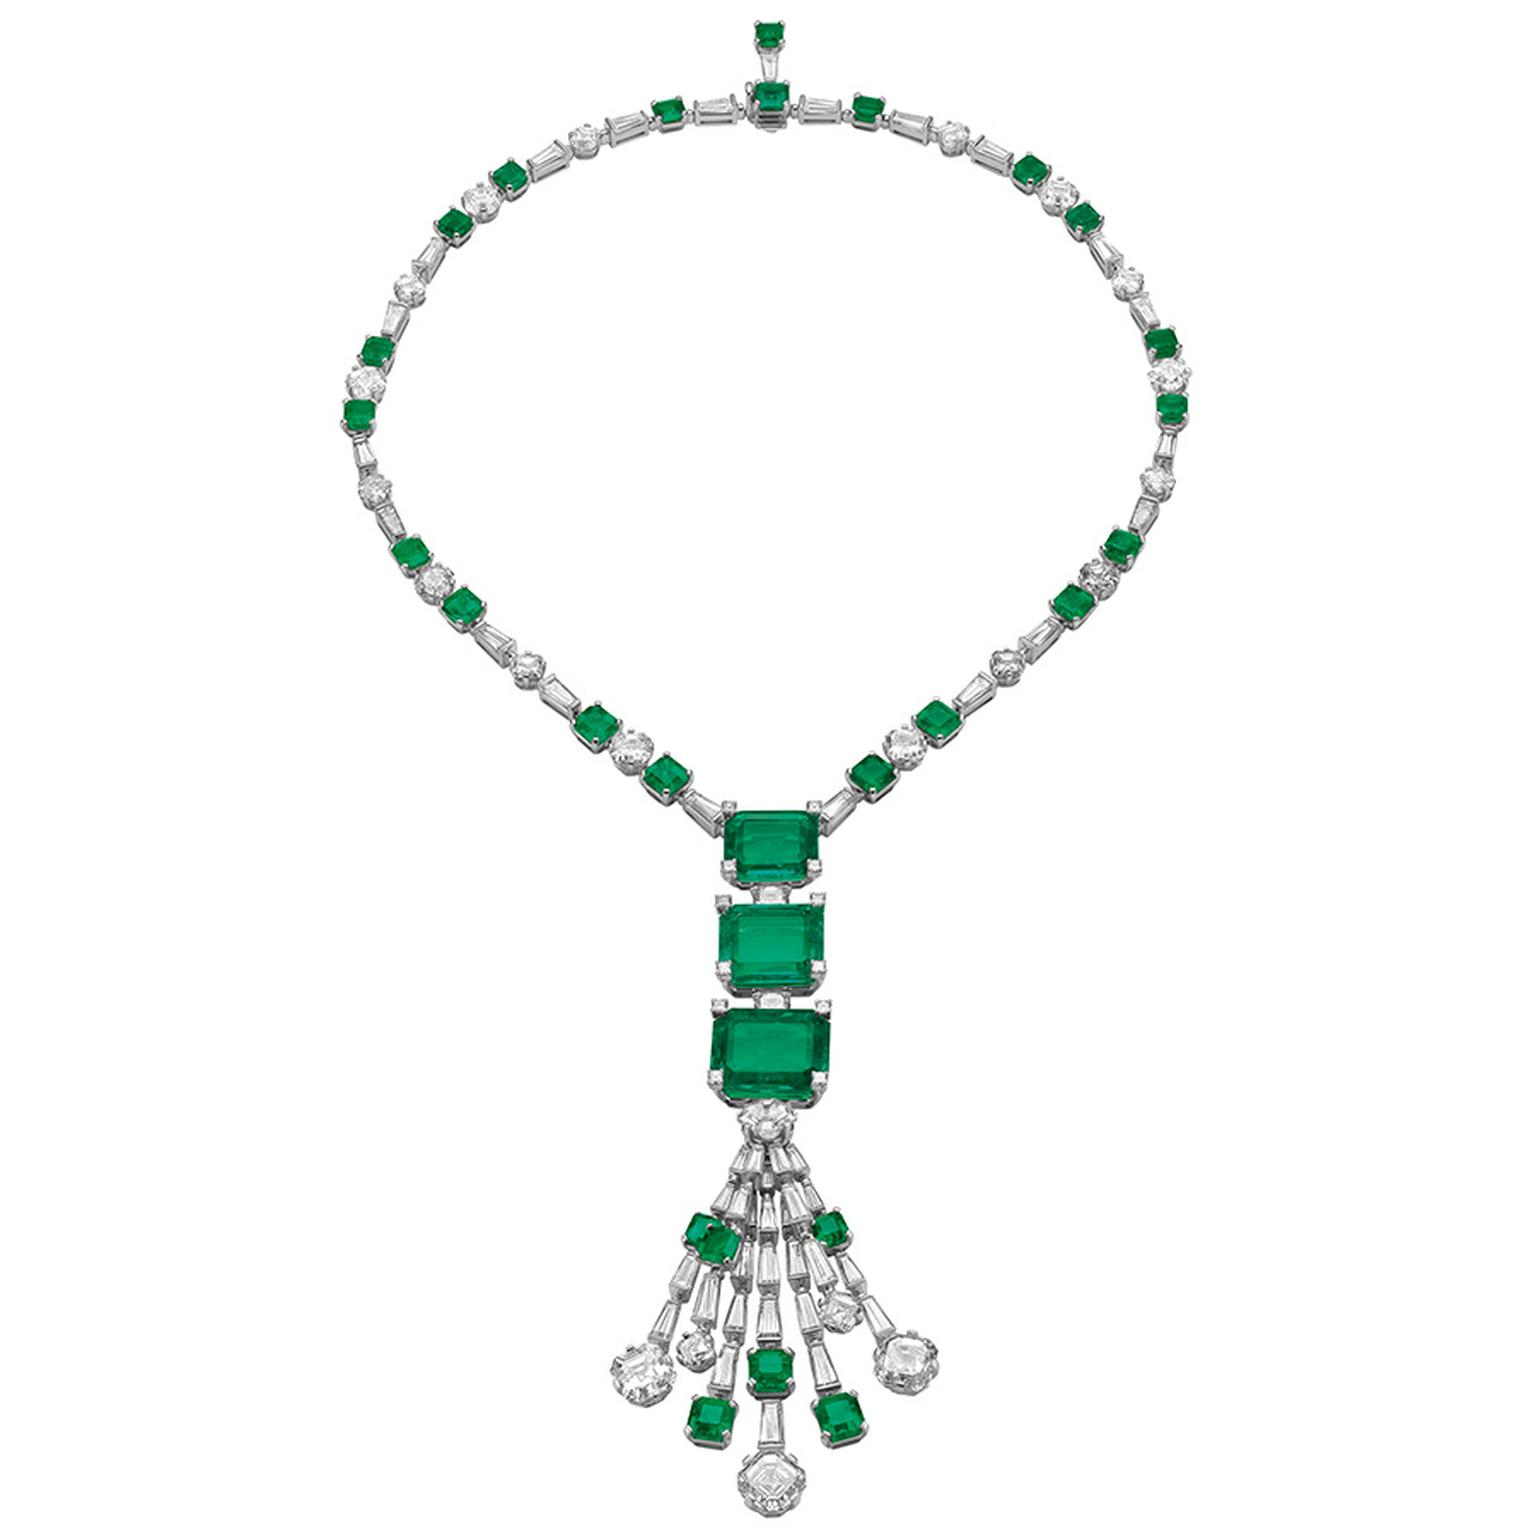 Bulgari-Elizabeth-Taylor-Emerald-and-Diamonds-necklace